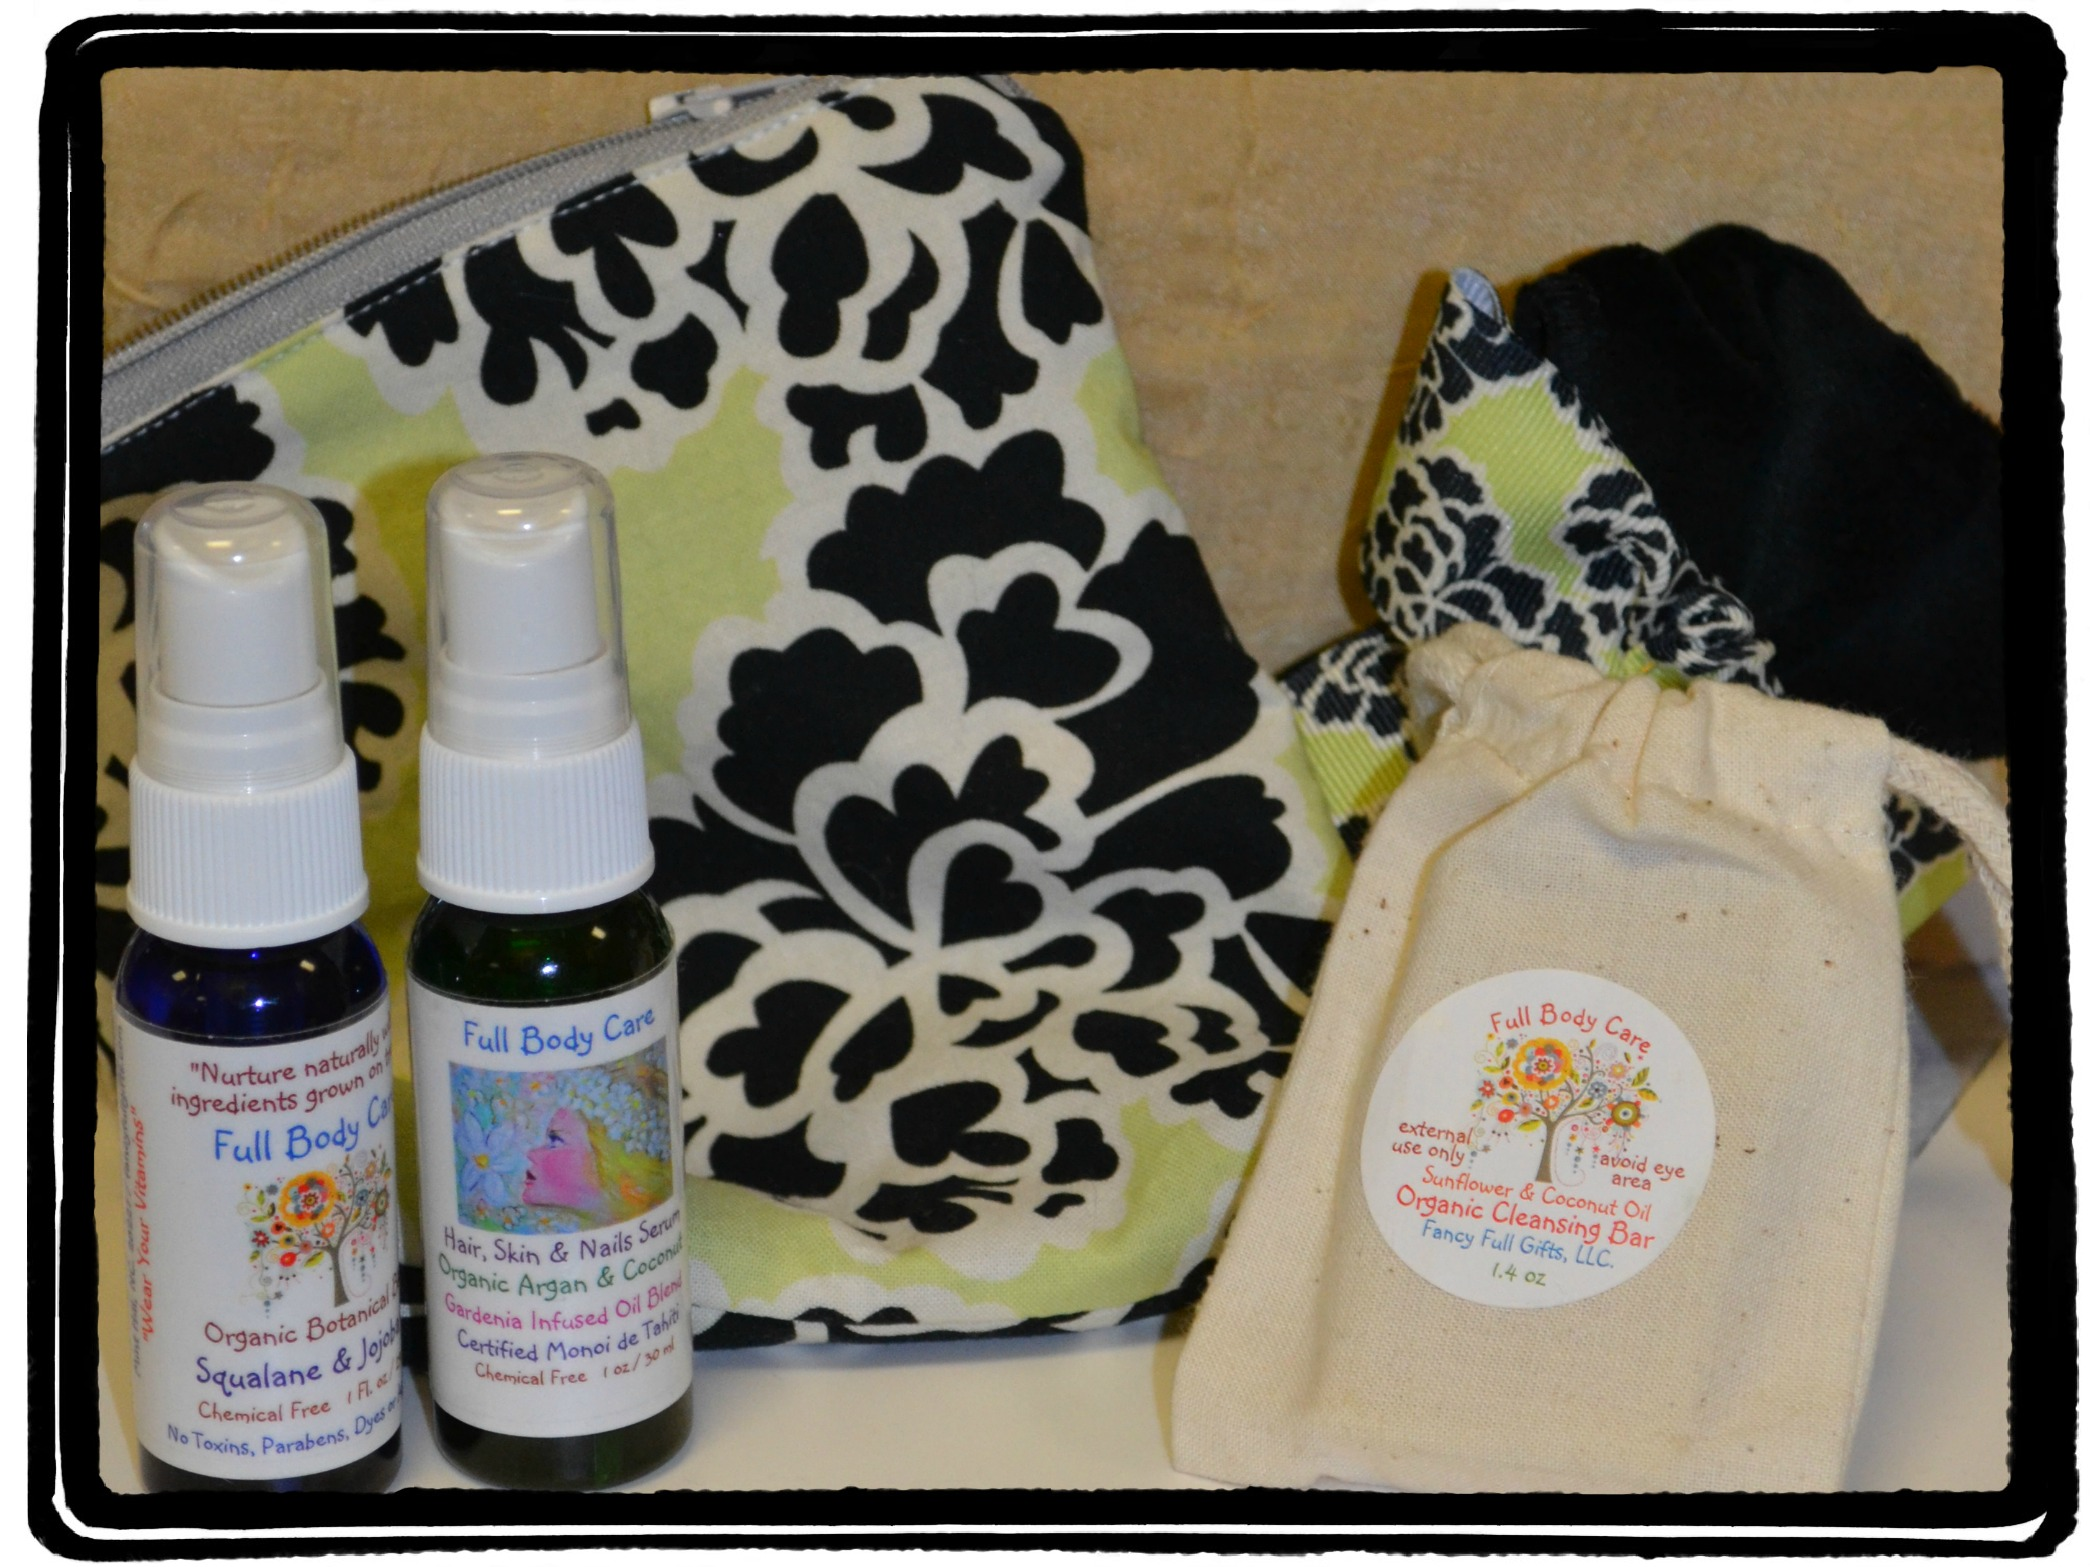 Full Body Care Botanical Oils Review & Giveaway